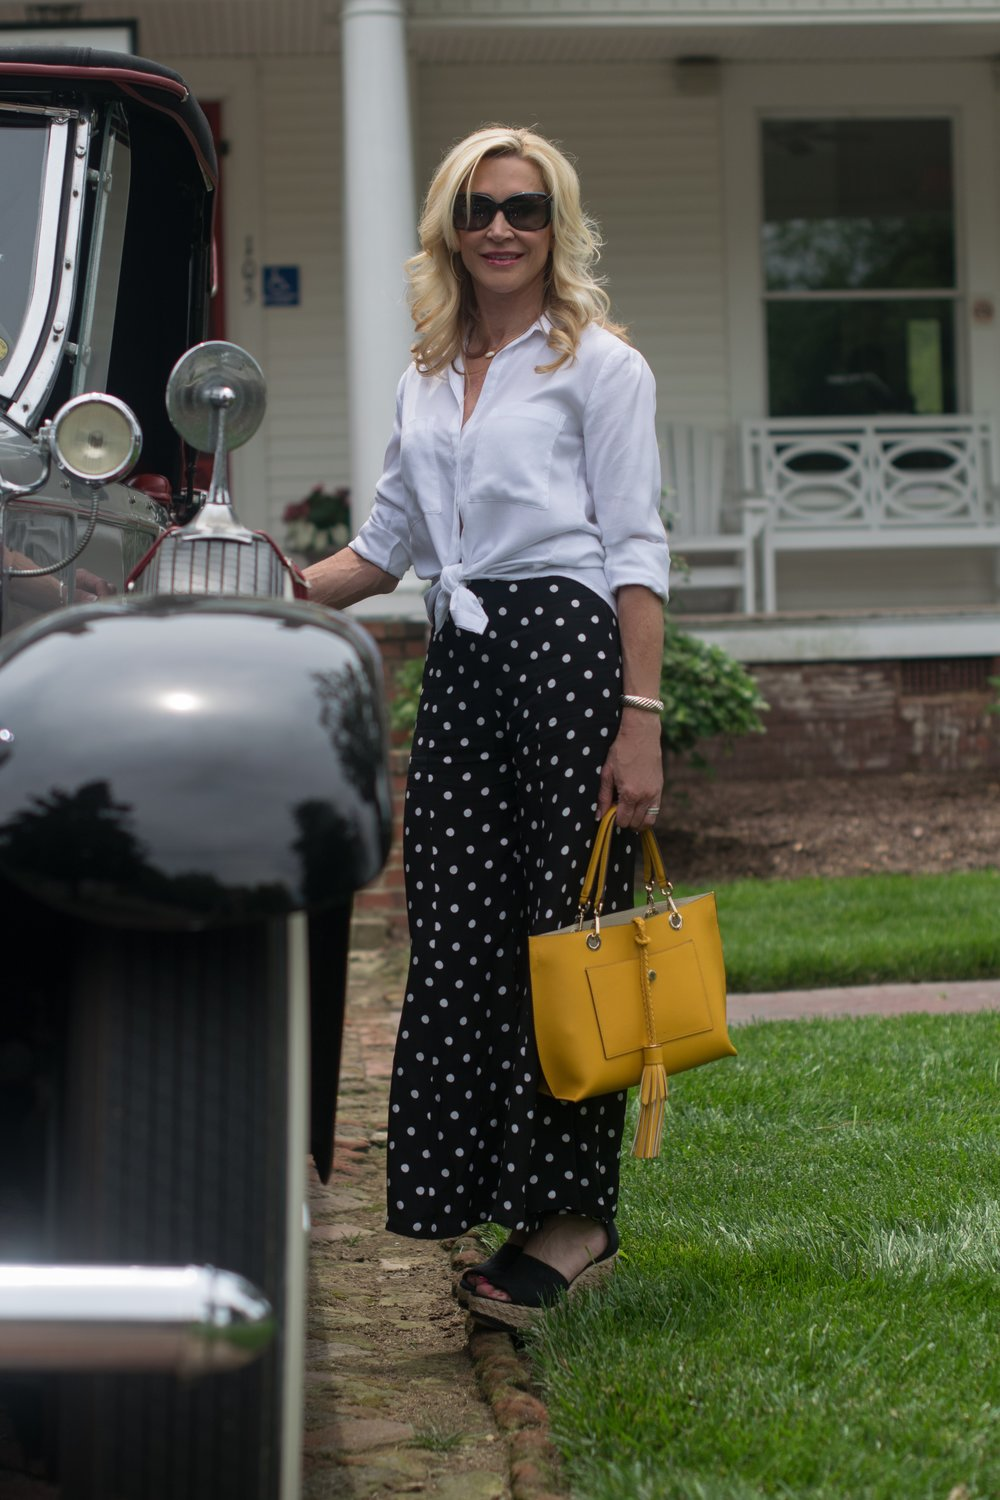 Gaucho Pants with White Blouse and Yellow Henri Bendel Bag